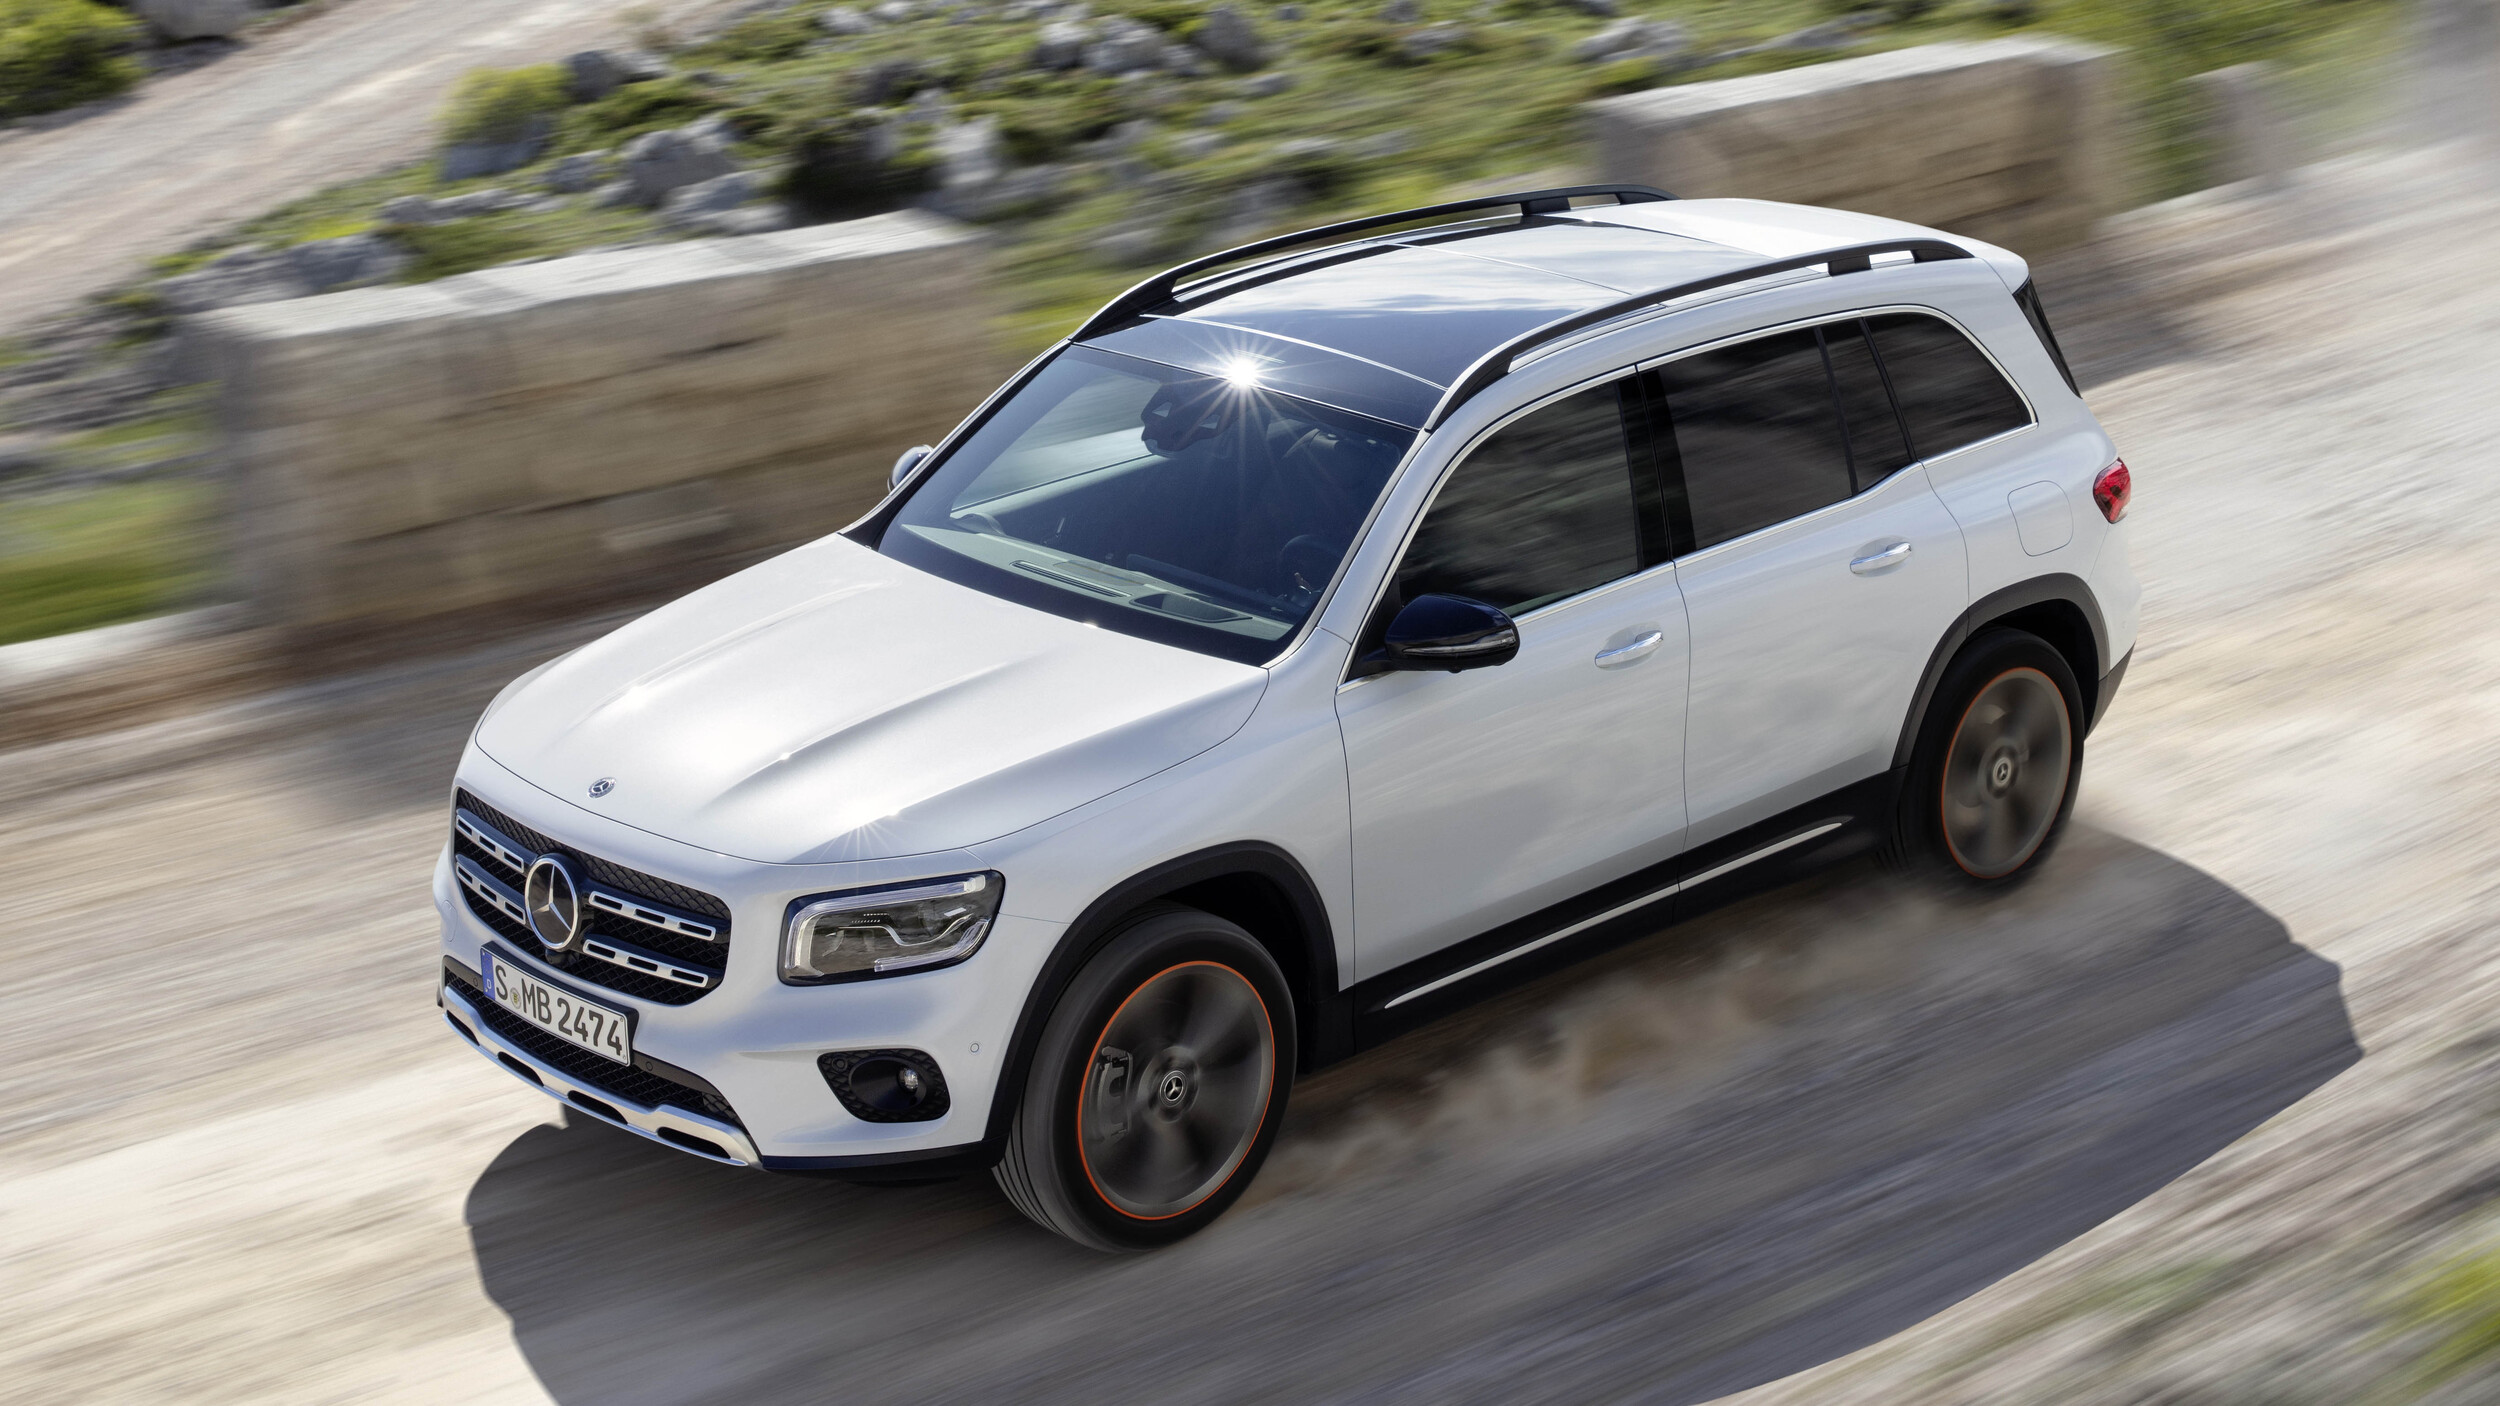 Certified Pre Owned Mercedes >> 2020 Mercedes-Benz GLB-Class revealed with three rows of seats | Autoblog